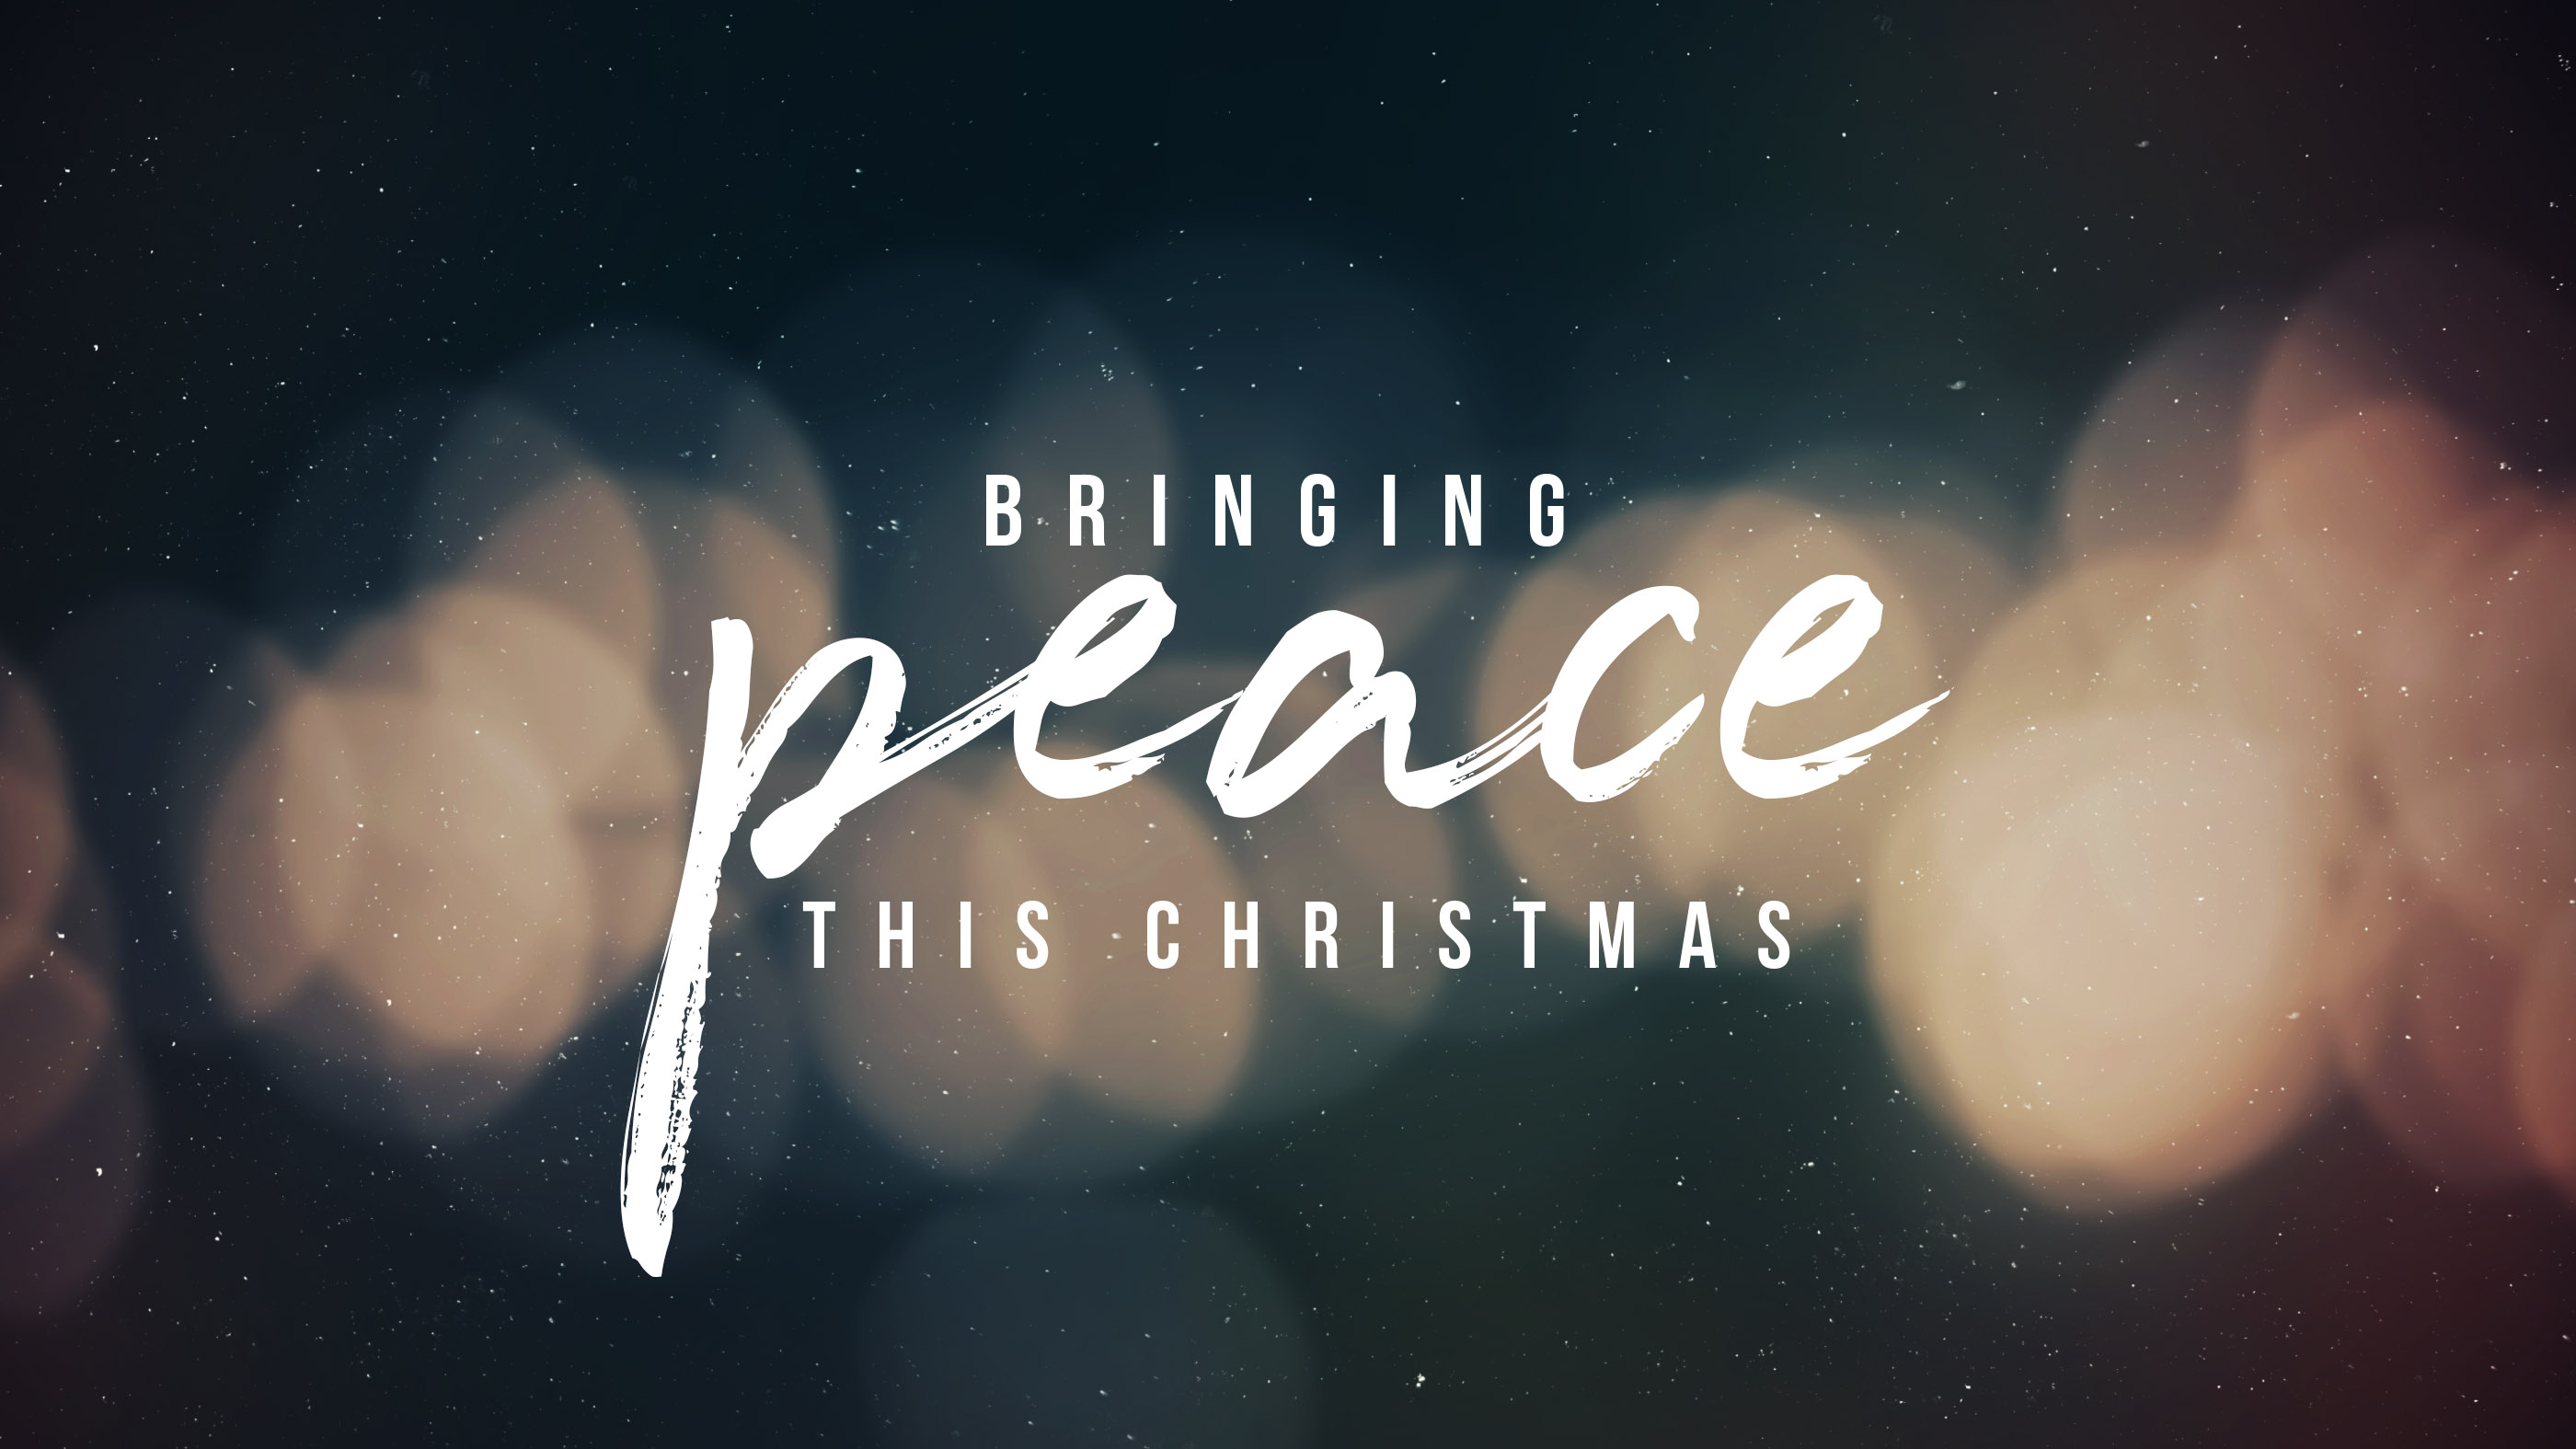 BRINGING PEACE THIS CHRISTMAS